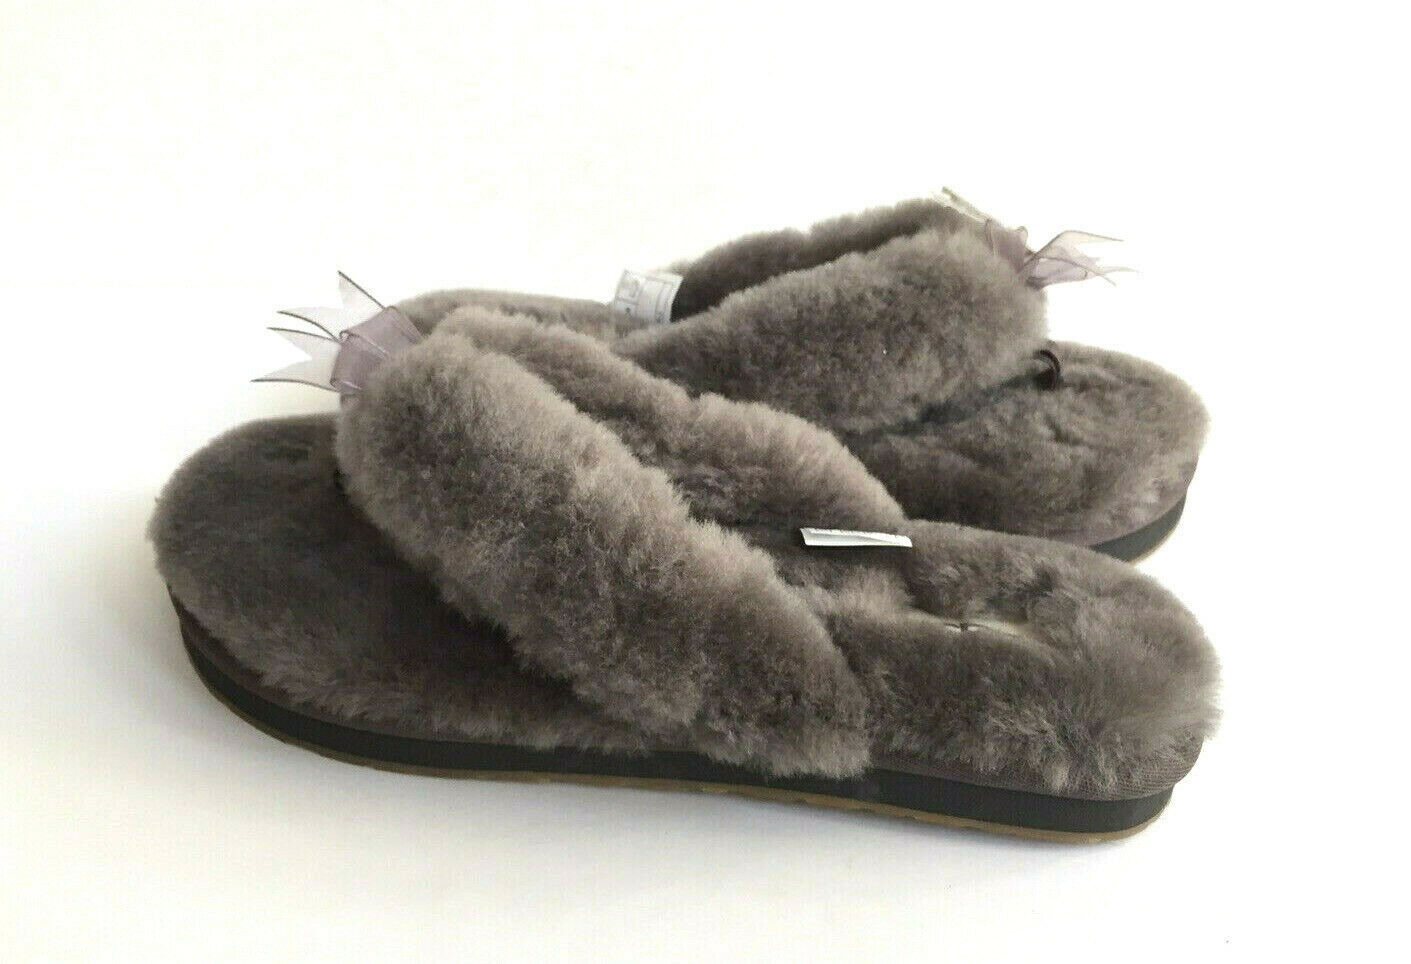 Primary image for UGG FLUFF FLIP FLOP III GREY GRAY MOCASSIN THONG SANDAL US 7 / EU 38 / UK 5